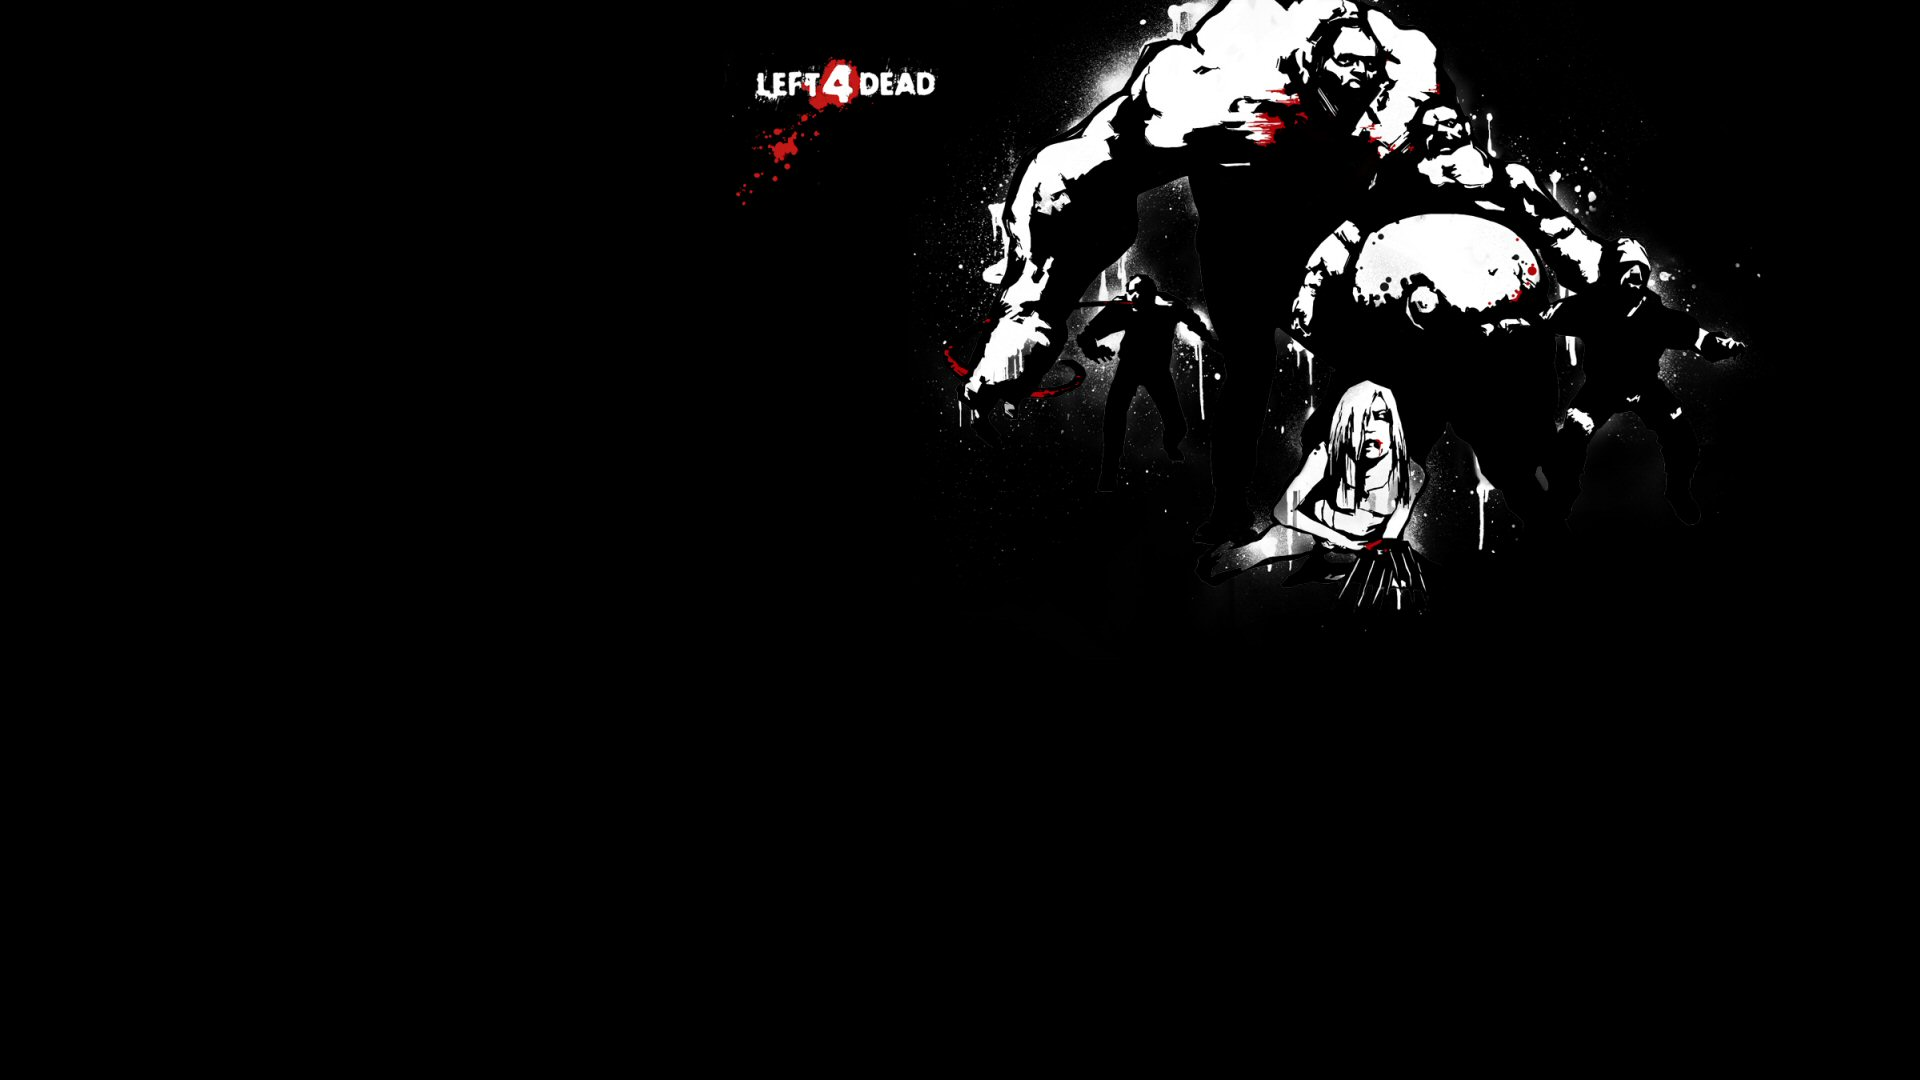 Left 4 Dead Wallpapers